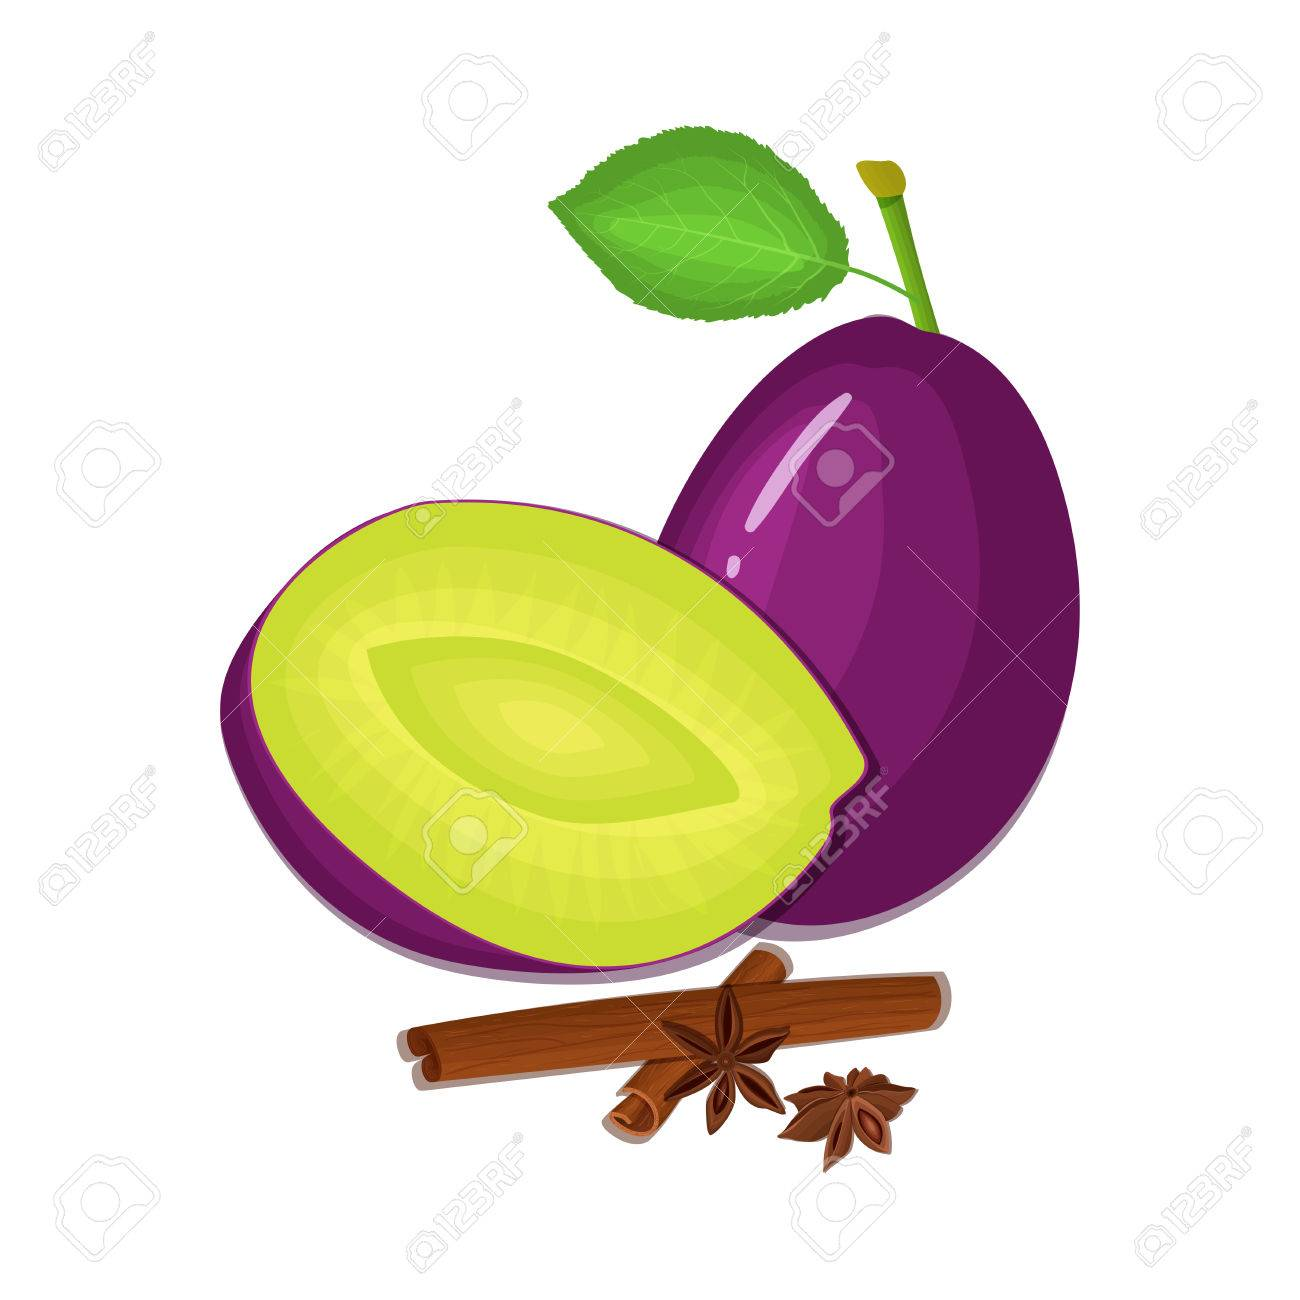 1300x1300 Vector Drawing Of A Few Plums With Spice. Purple Plum Fruits